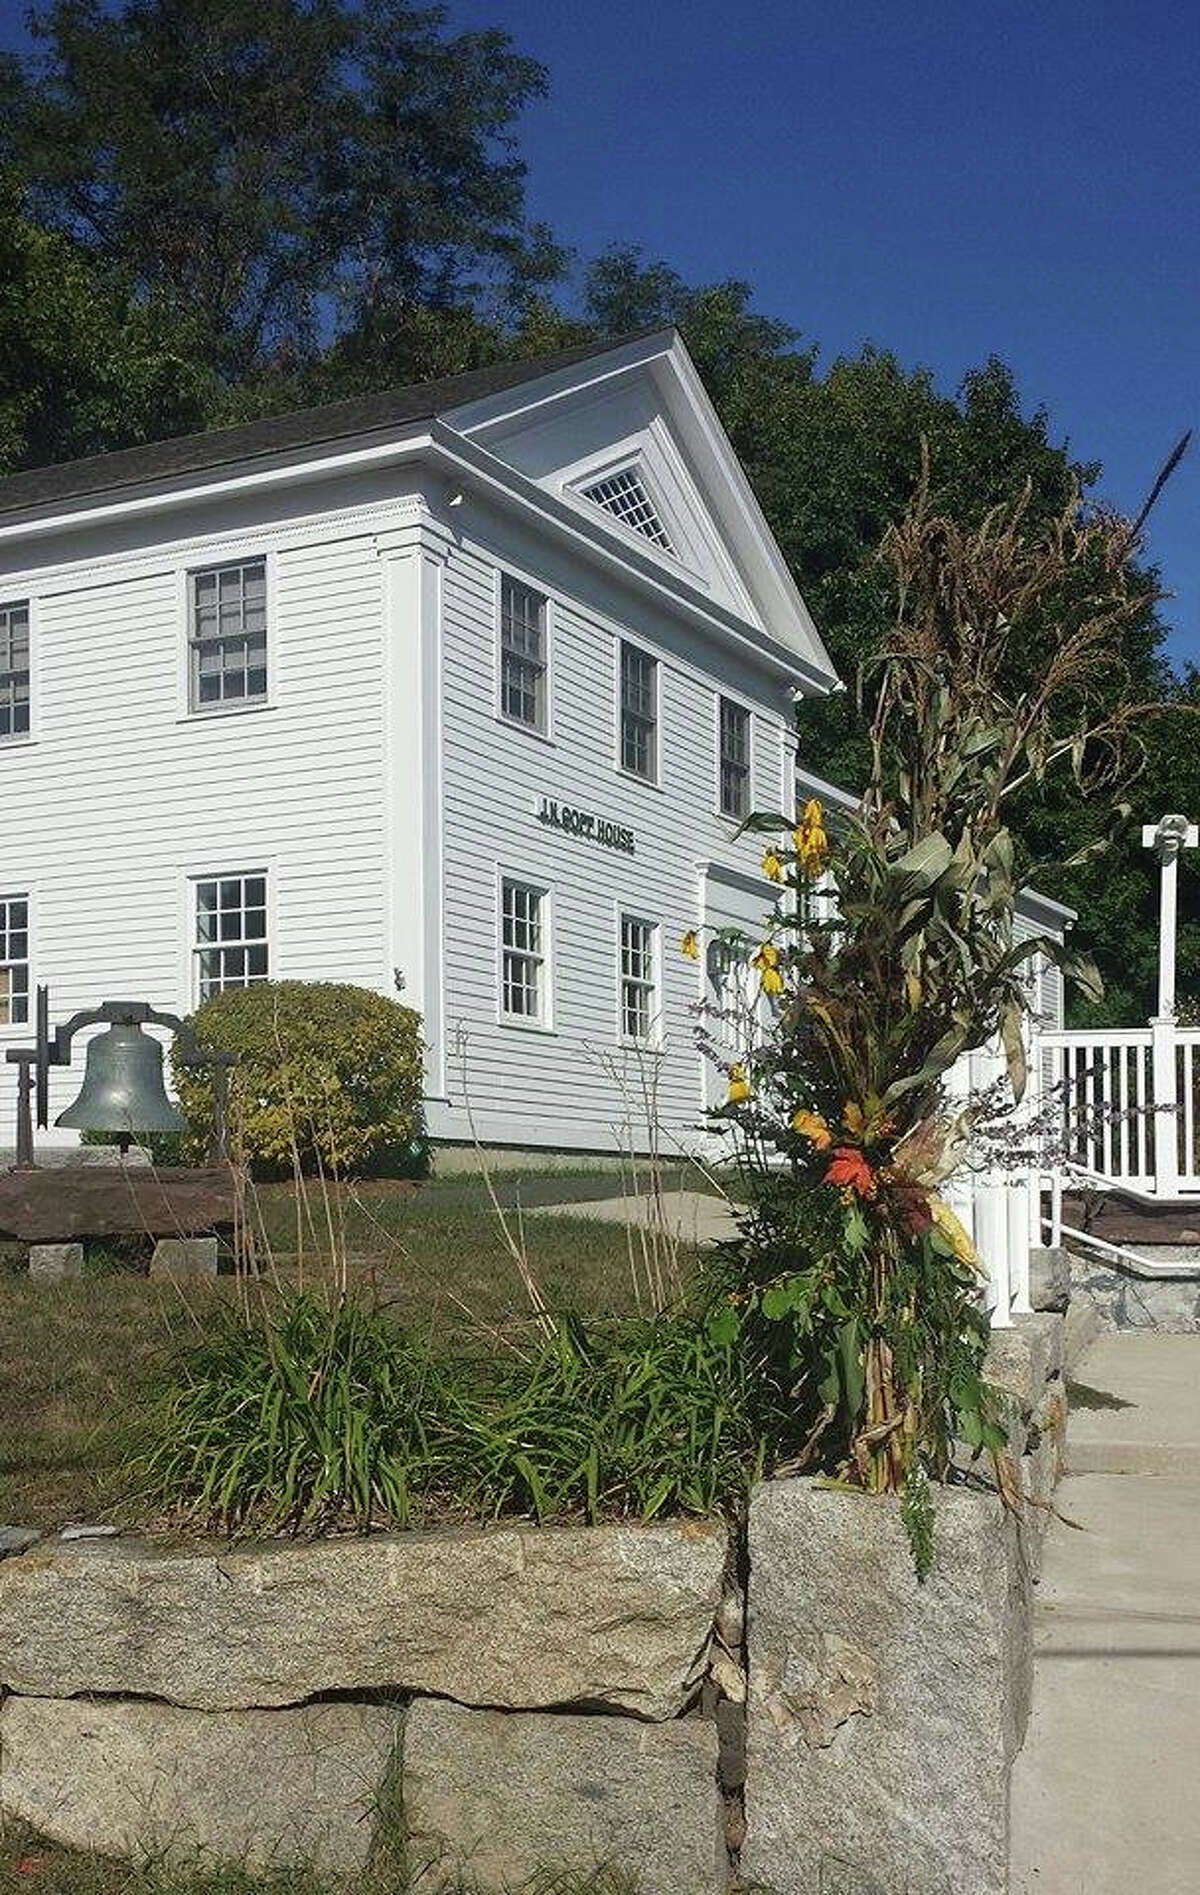 The Goff House will host exhibits by area artists during Sunday's Open Studio event in East Hampton.